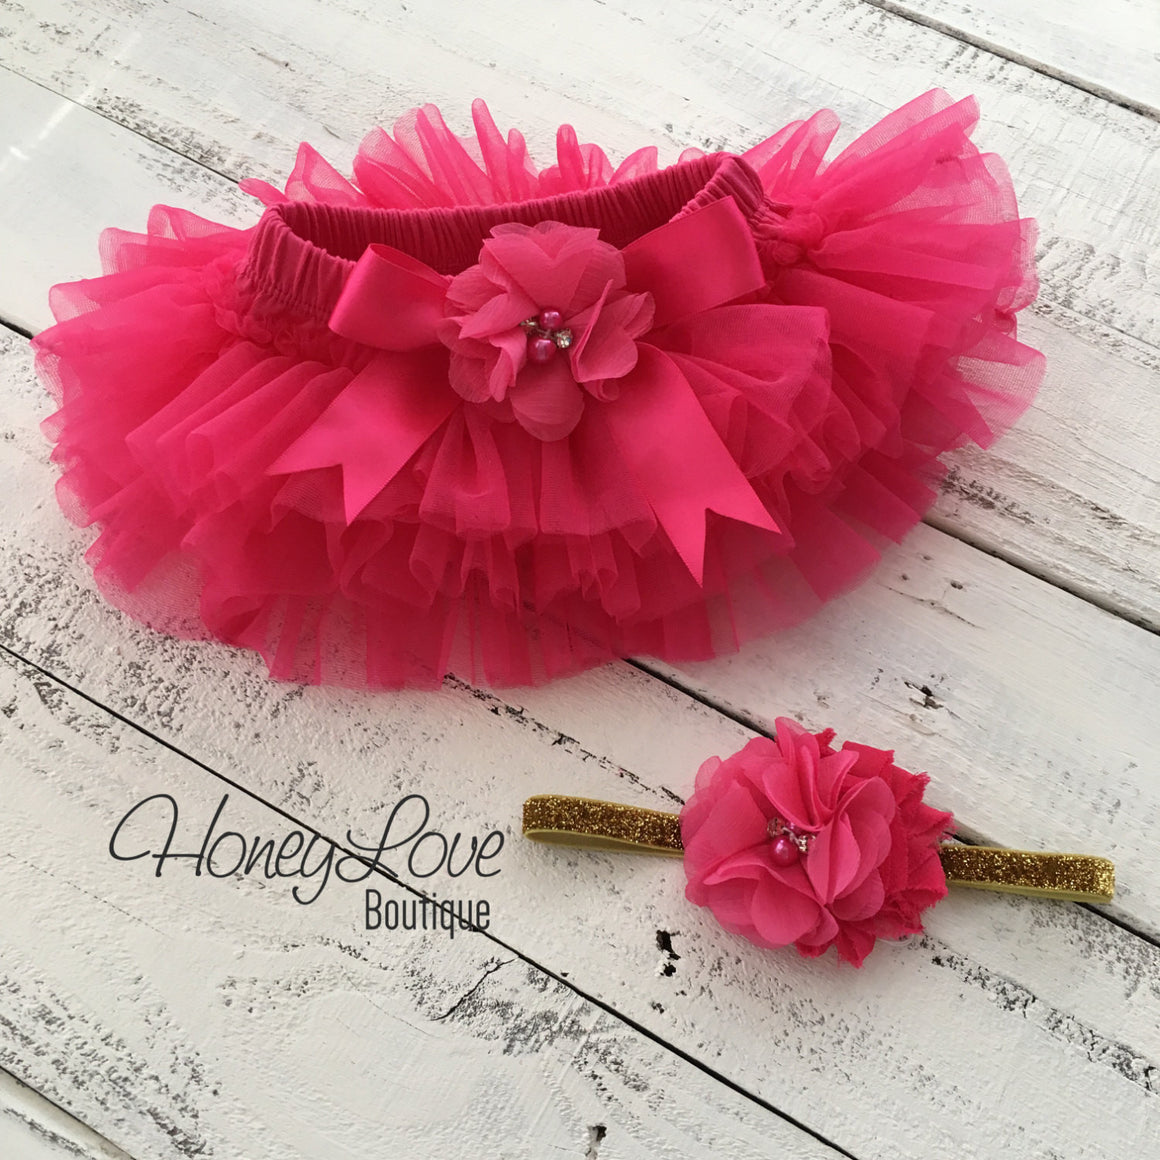 Watermelon Pink tutu skirt bloomers and gold glitter headband - embellished bloomer - HoneyLoveBoutique